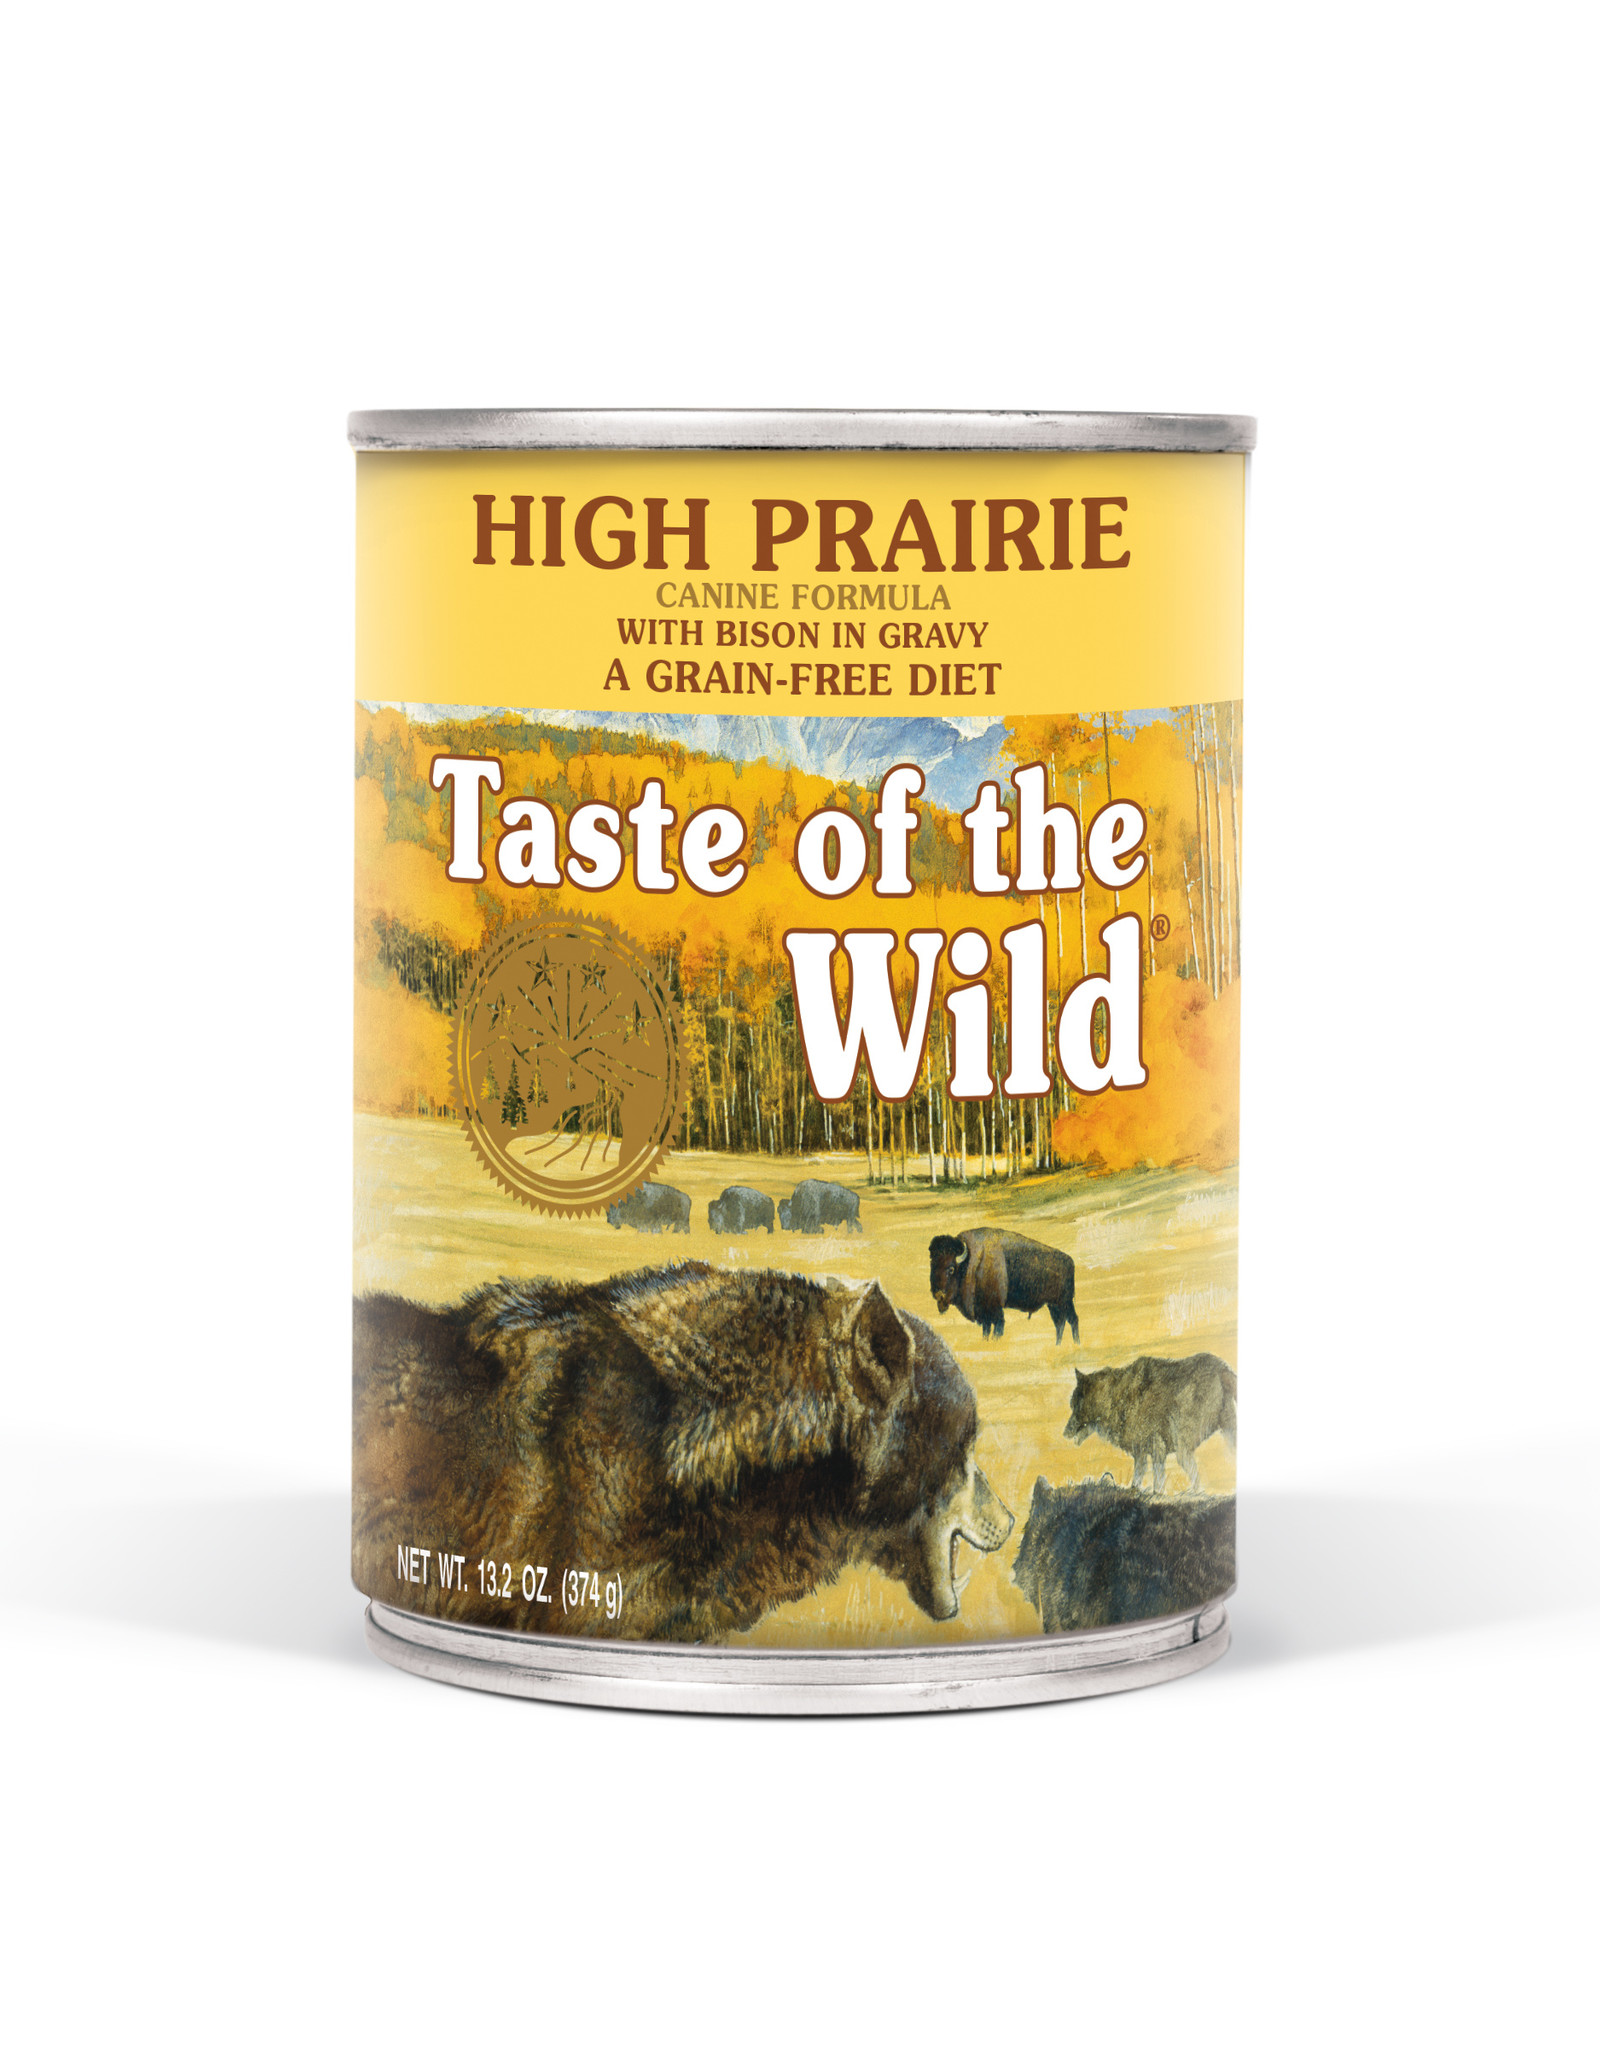 TOTW High Prairie Canine Canned 13.2oz